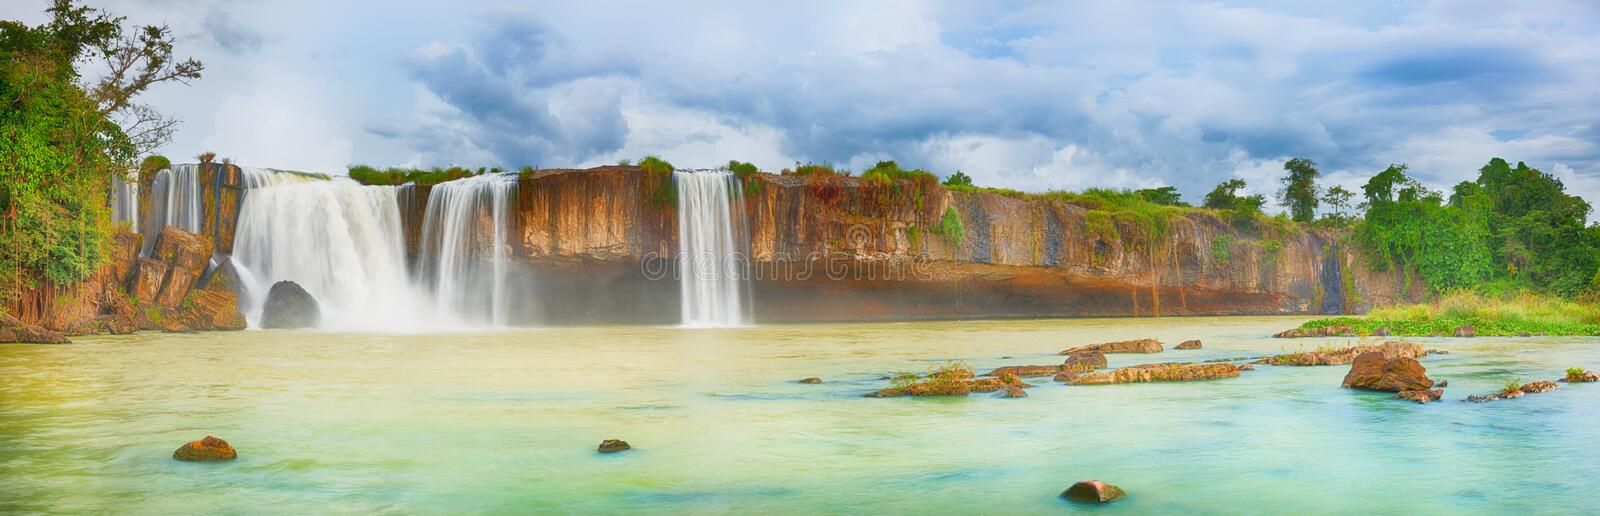 Dry Nur Waterfall Royalty Free Stock Photos